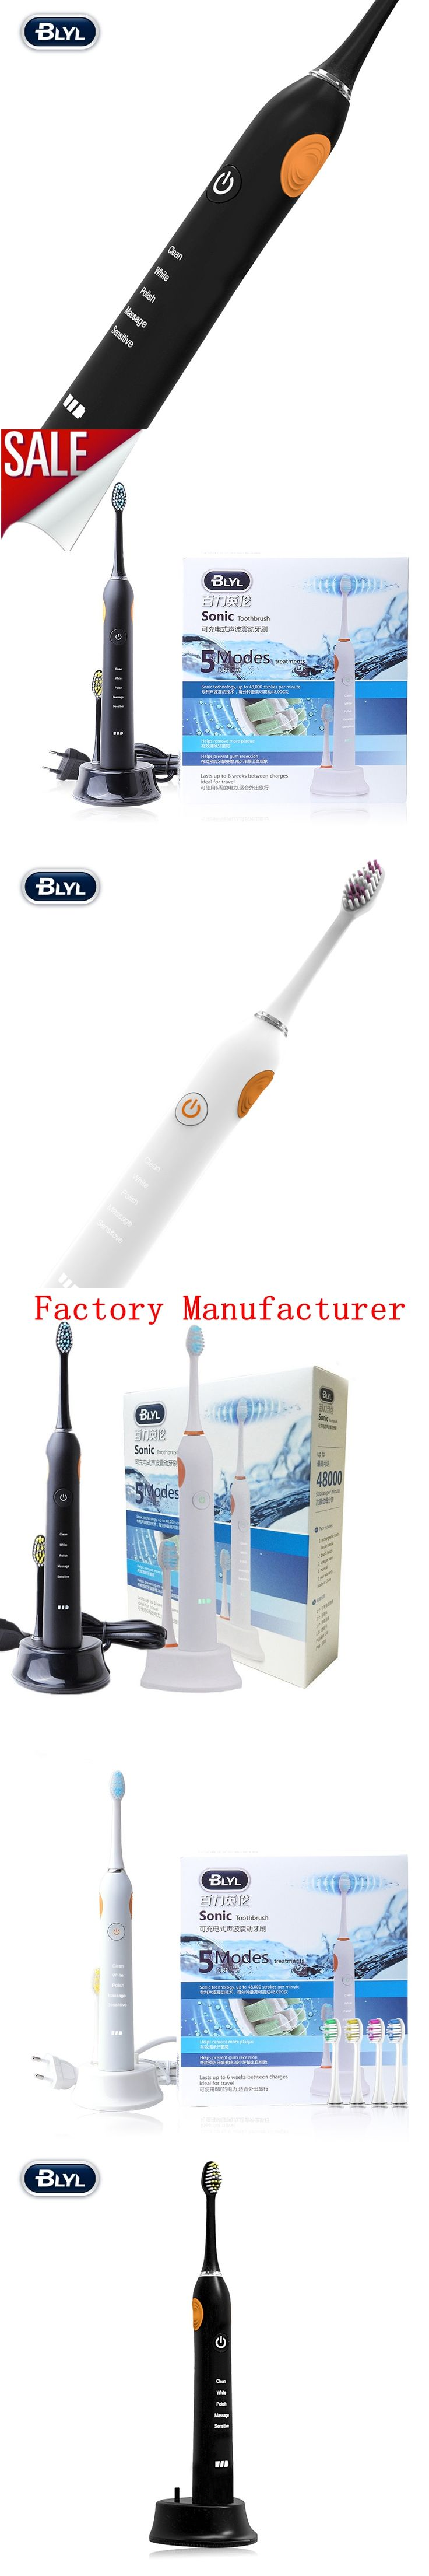 Best Quality 5 Modes Multifunction Sonic Electric Toothbrush Rechargeable Replaceable Brush Head With Color Box Fast Delivery